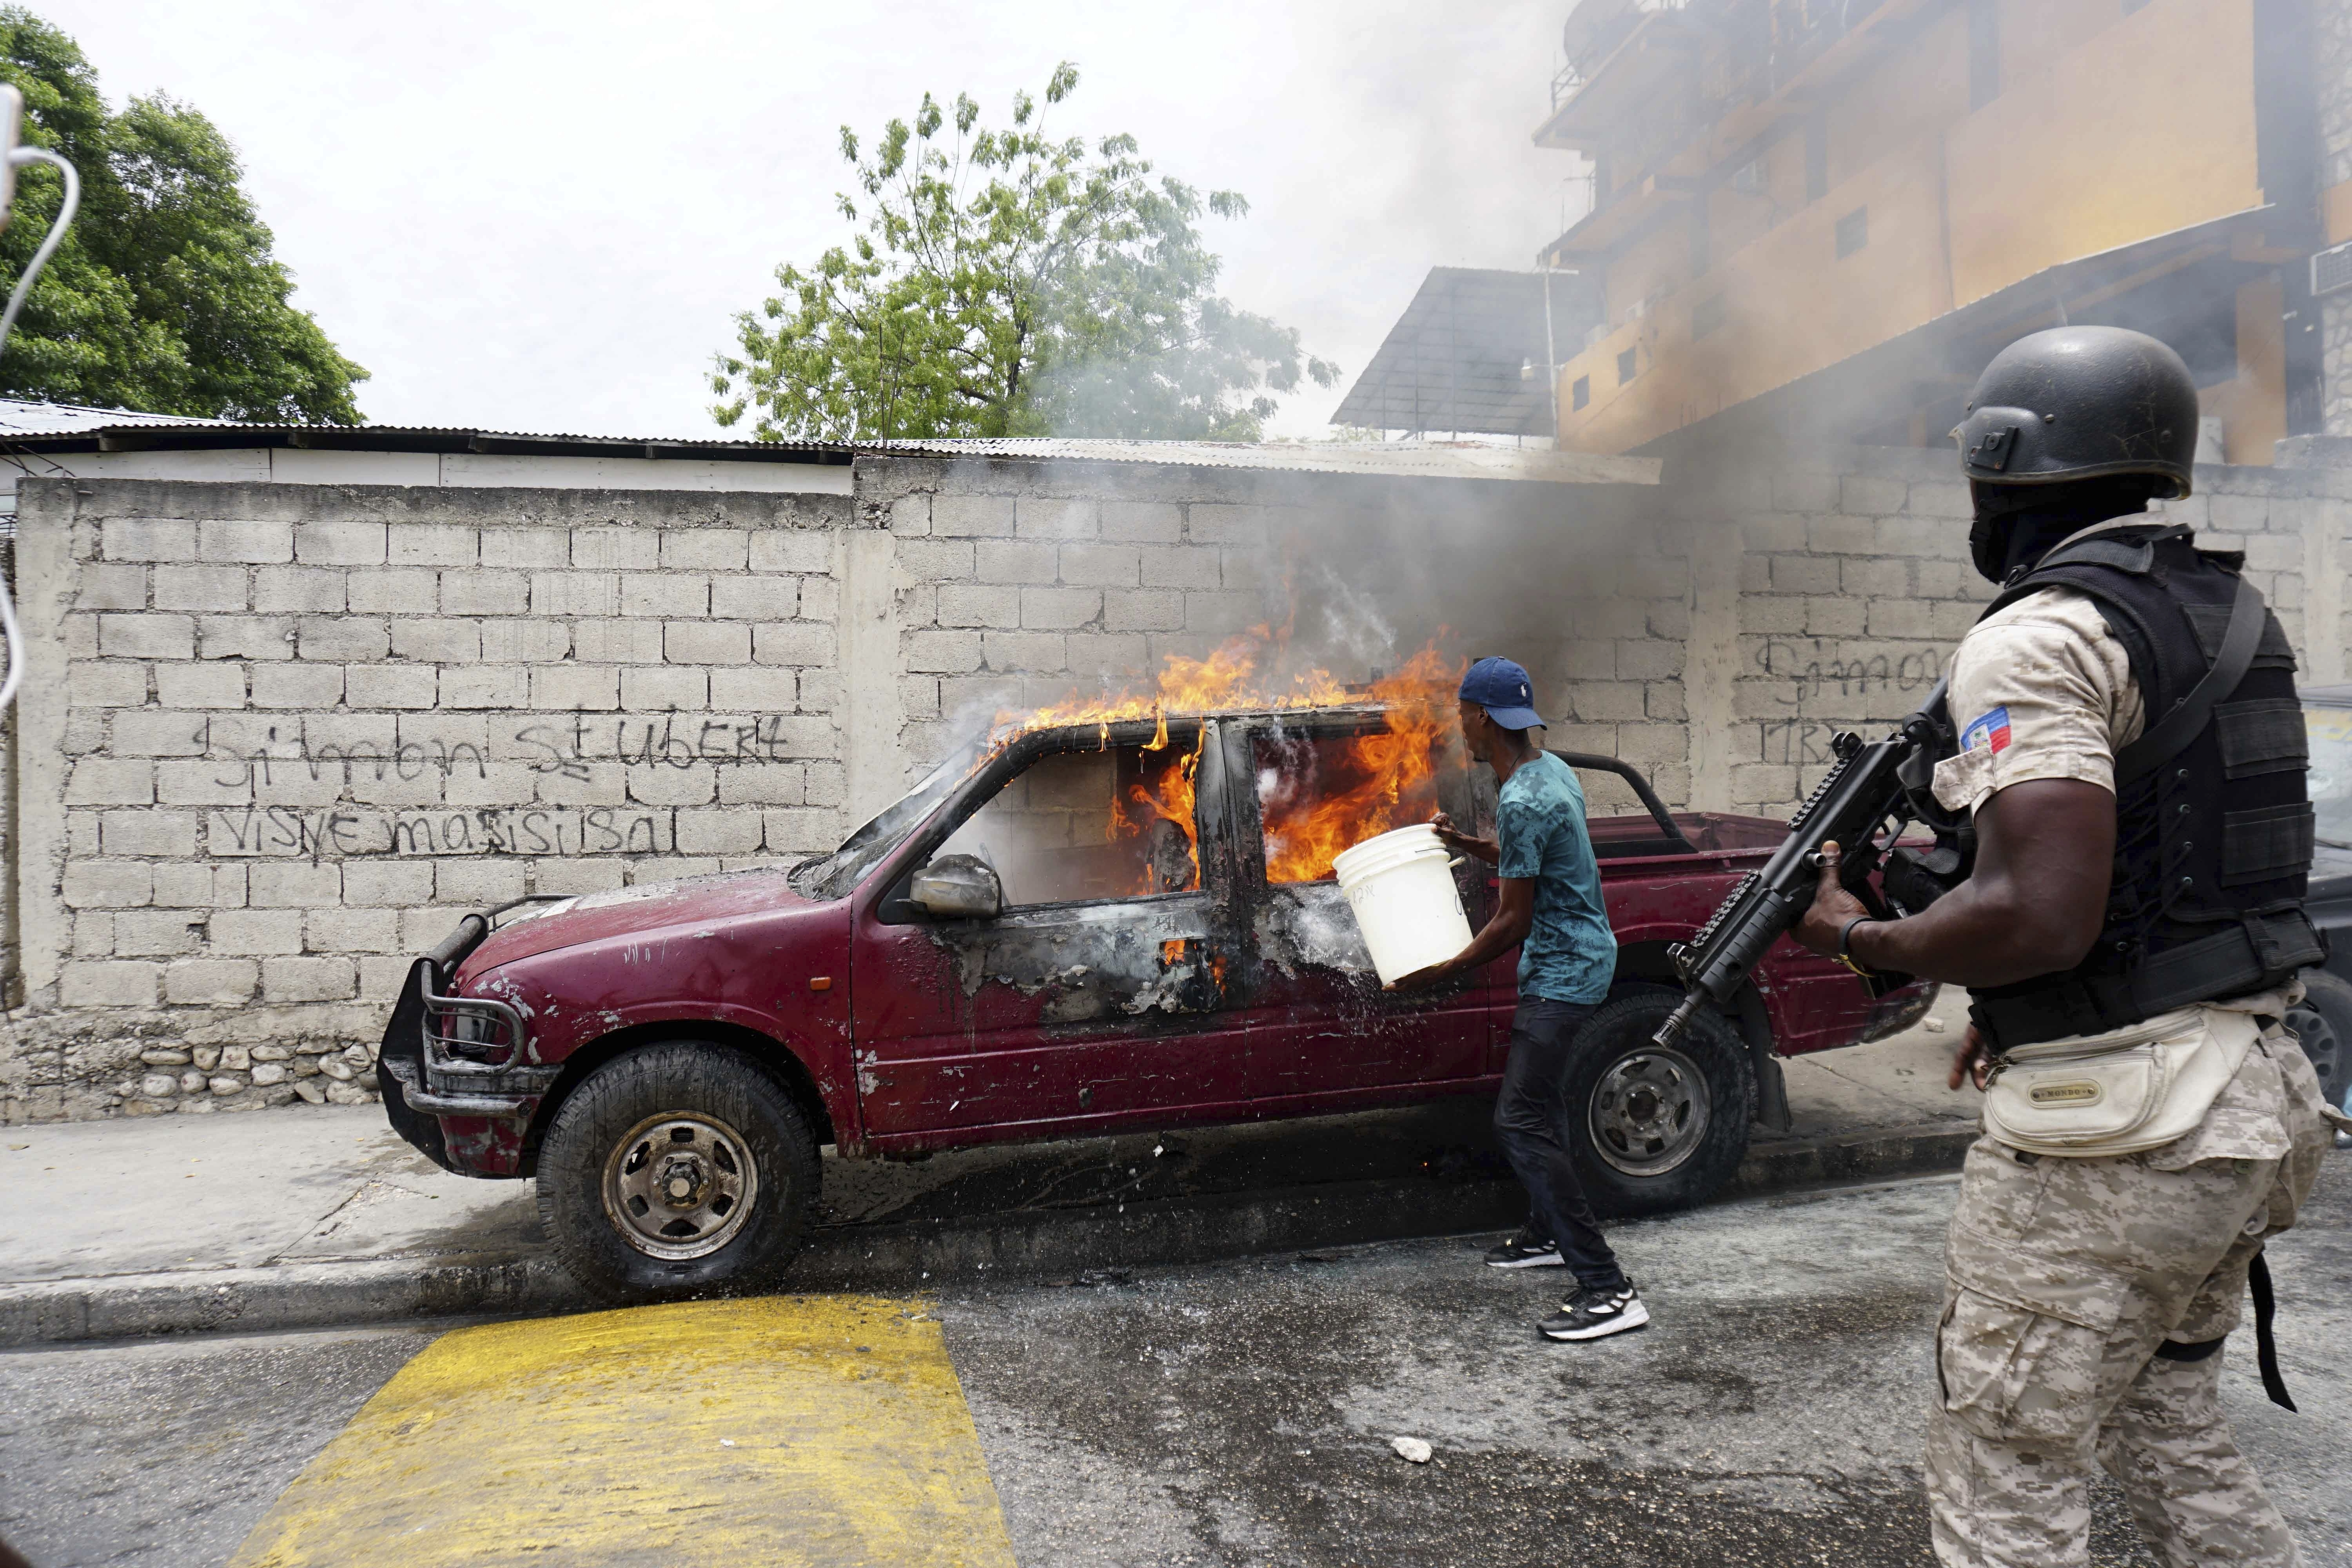 Haitian Policeman stands guard as man attempts to put out fire